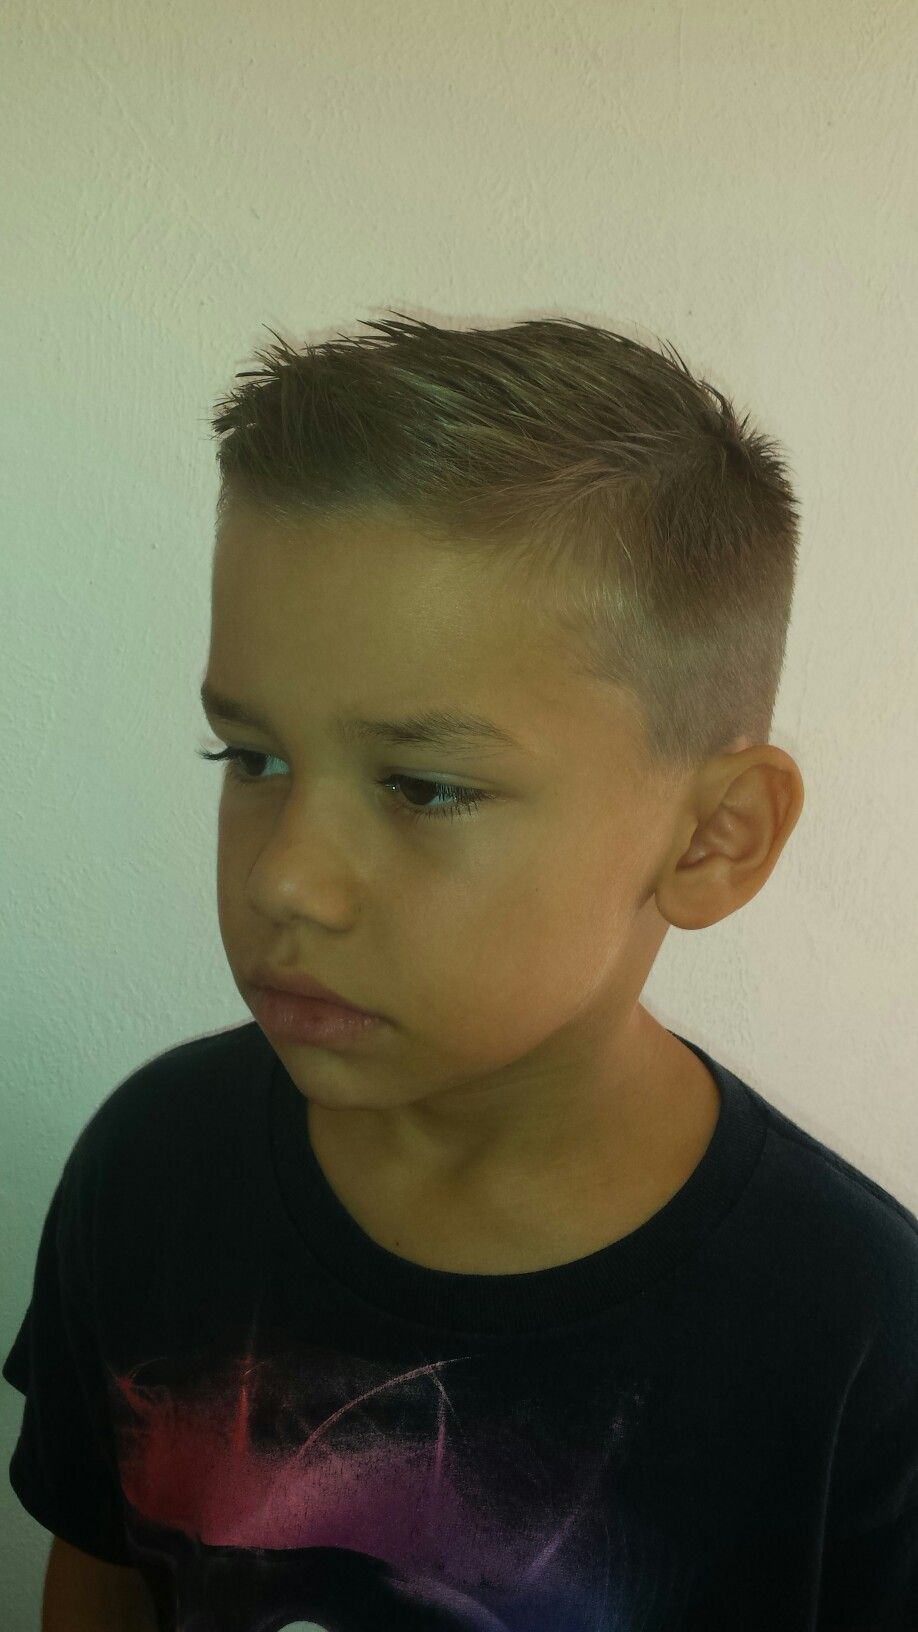 Boys Haircut Short Boy Haircuts Short Short Hair For Boys Boys Haircut Styles